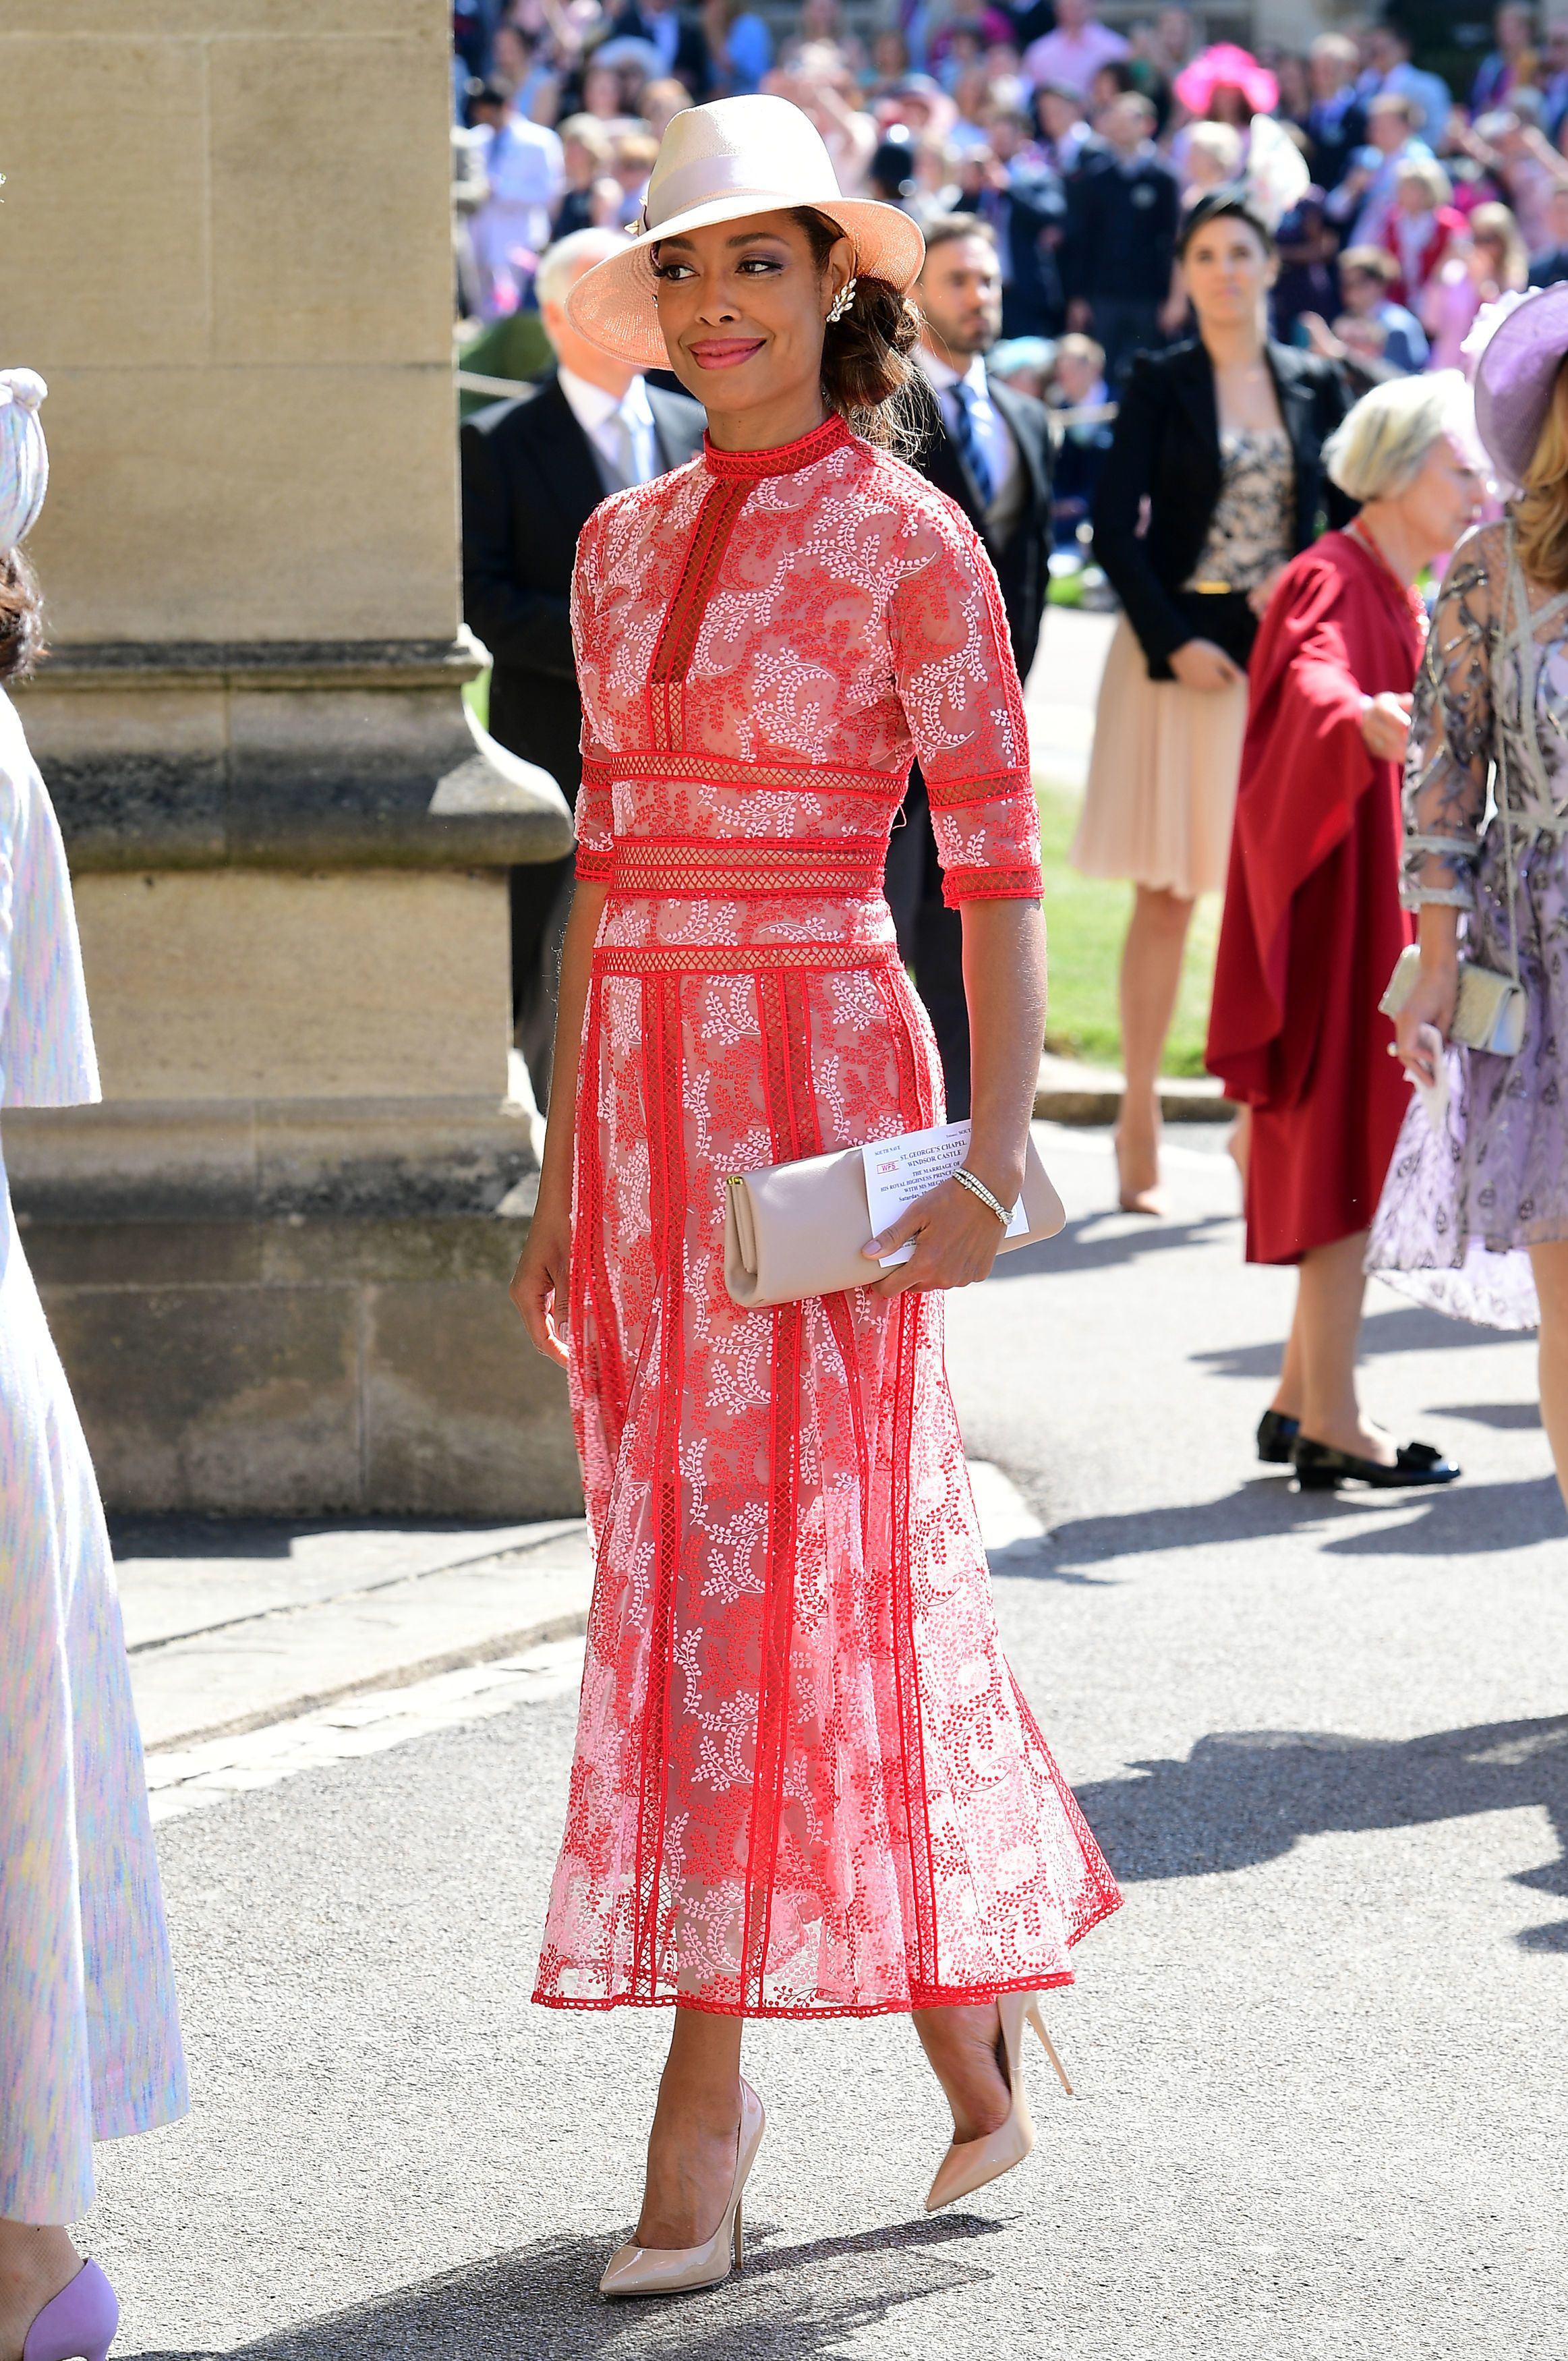 588e87f8 The 32 Best Dressed Guests At Prince Harry and Meghan Markle's Royal Wedding